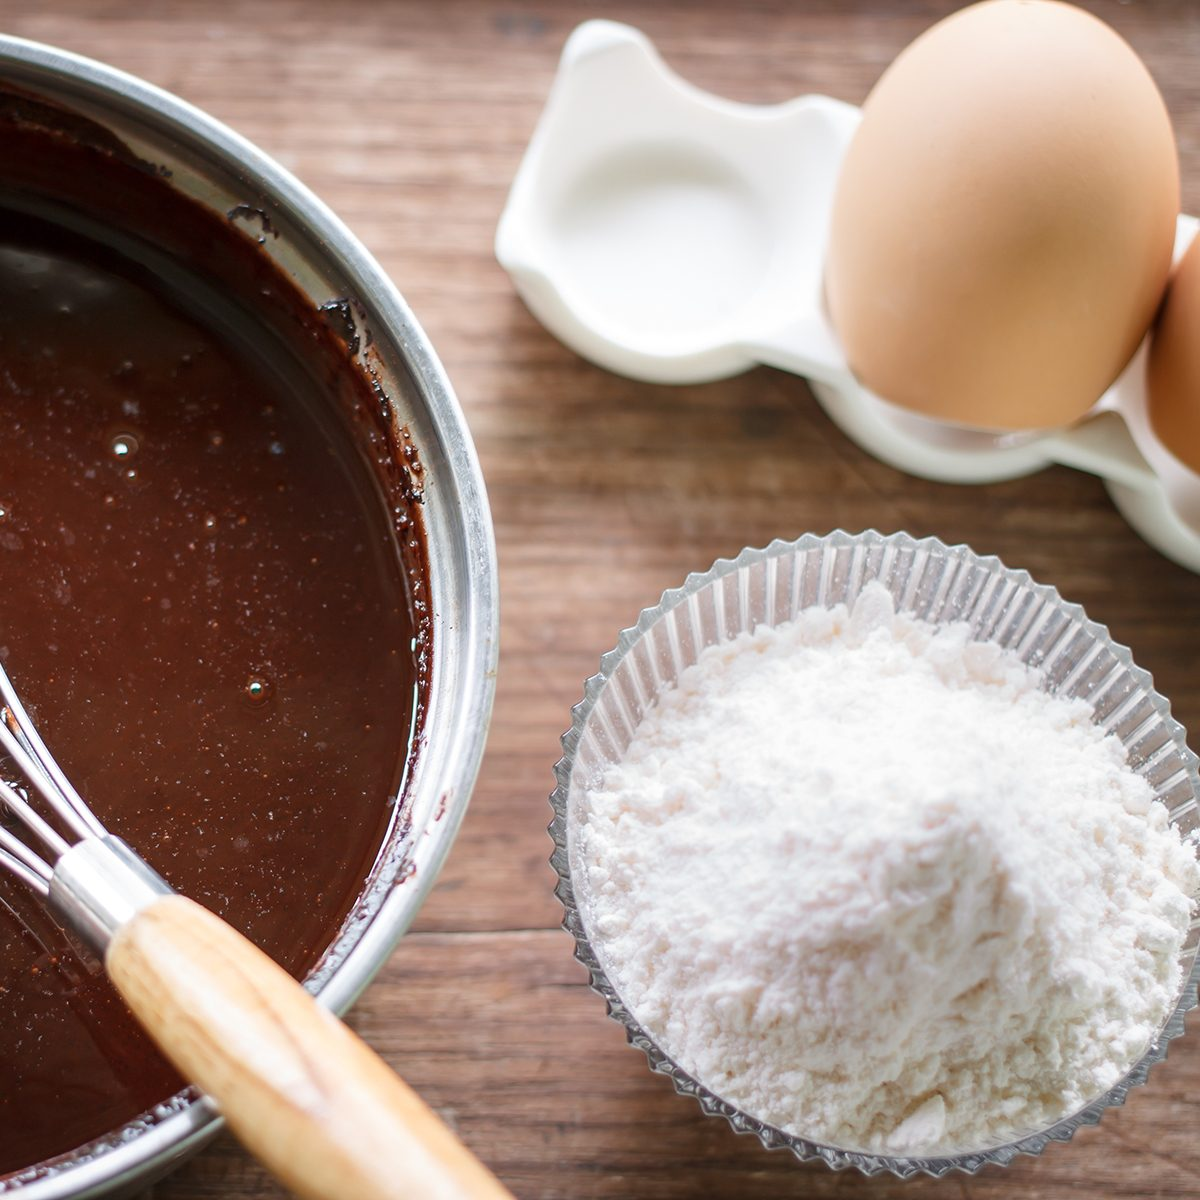 mixed yolk eggs, flour and sugar prepare for baking cake or bake